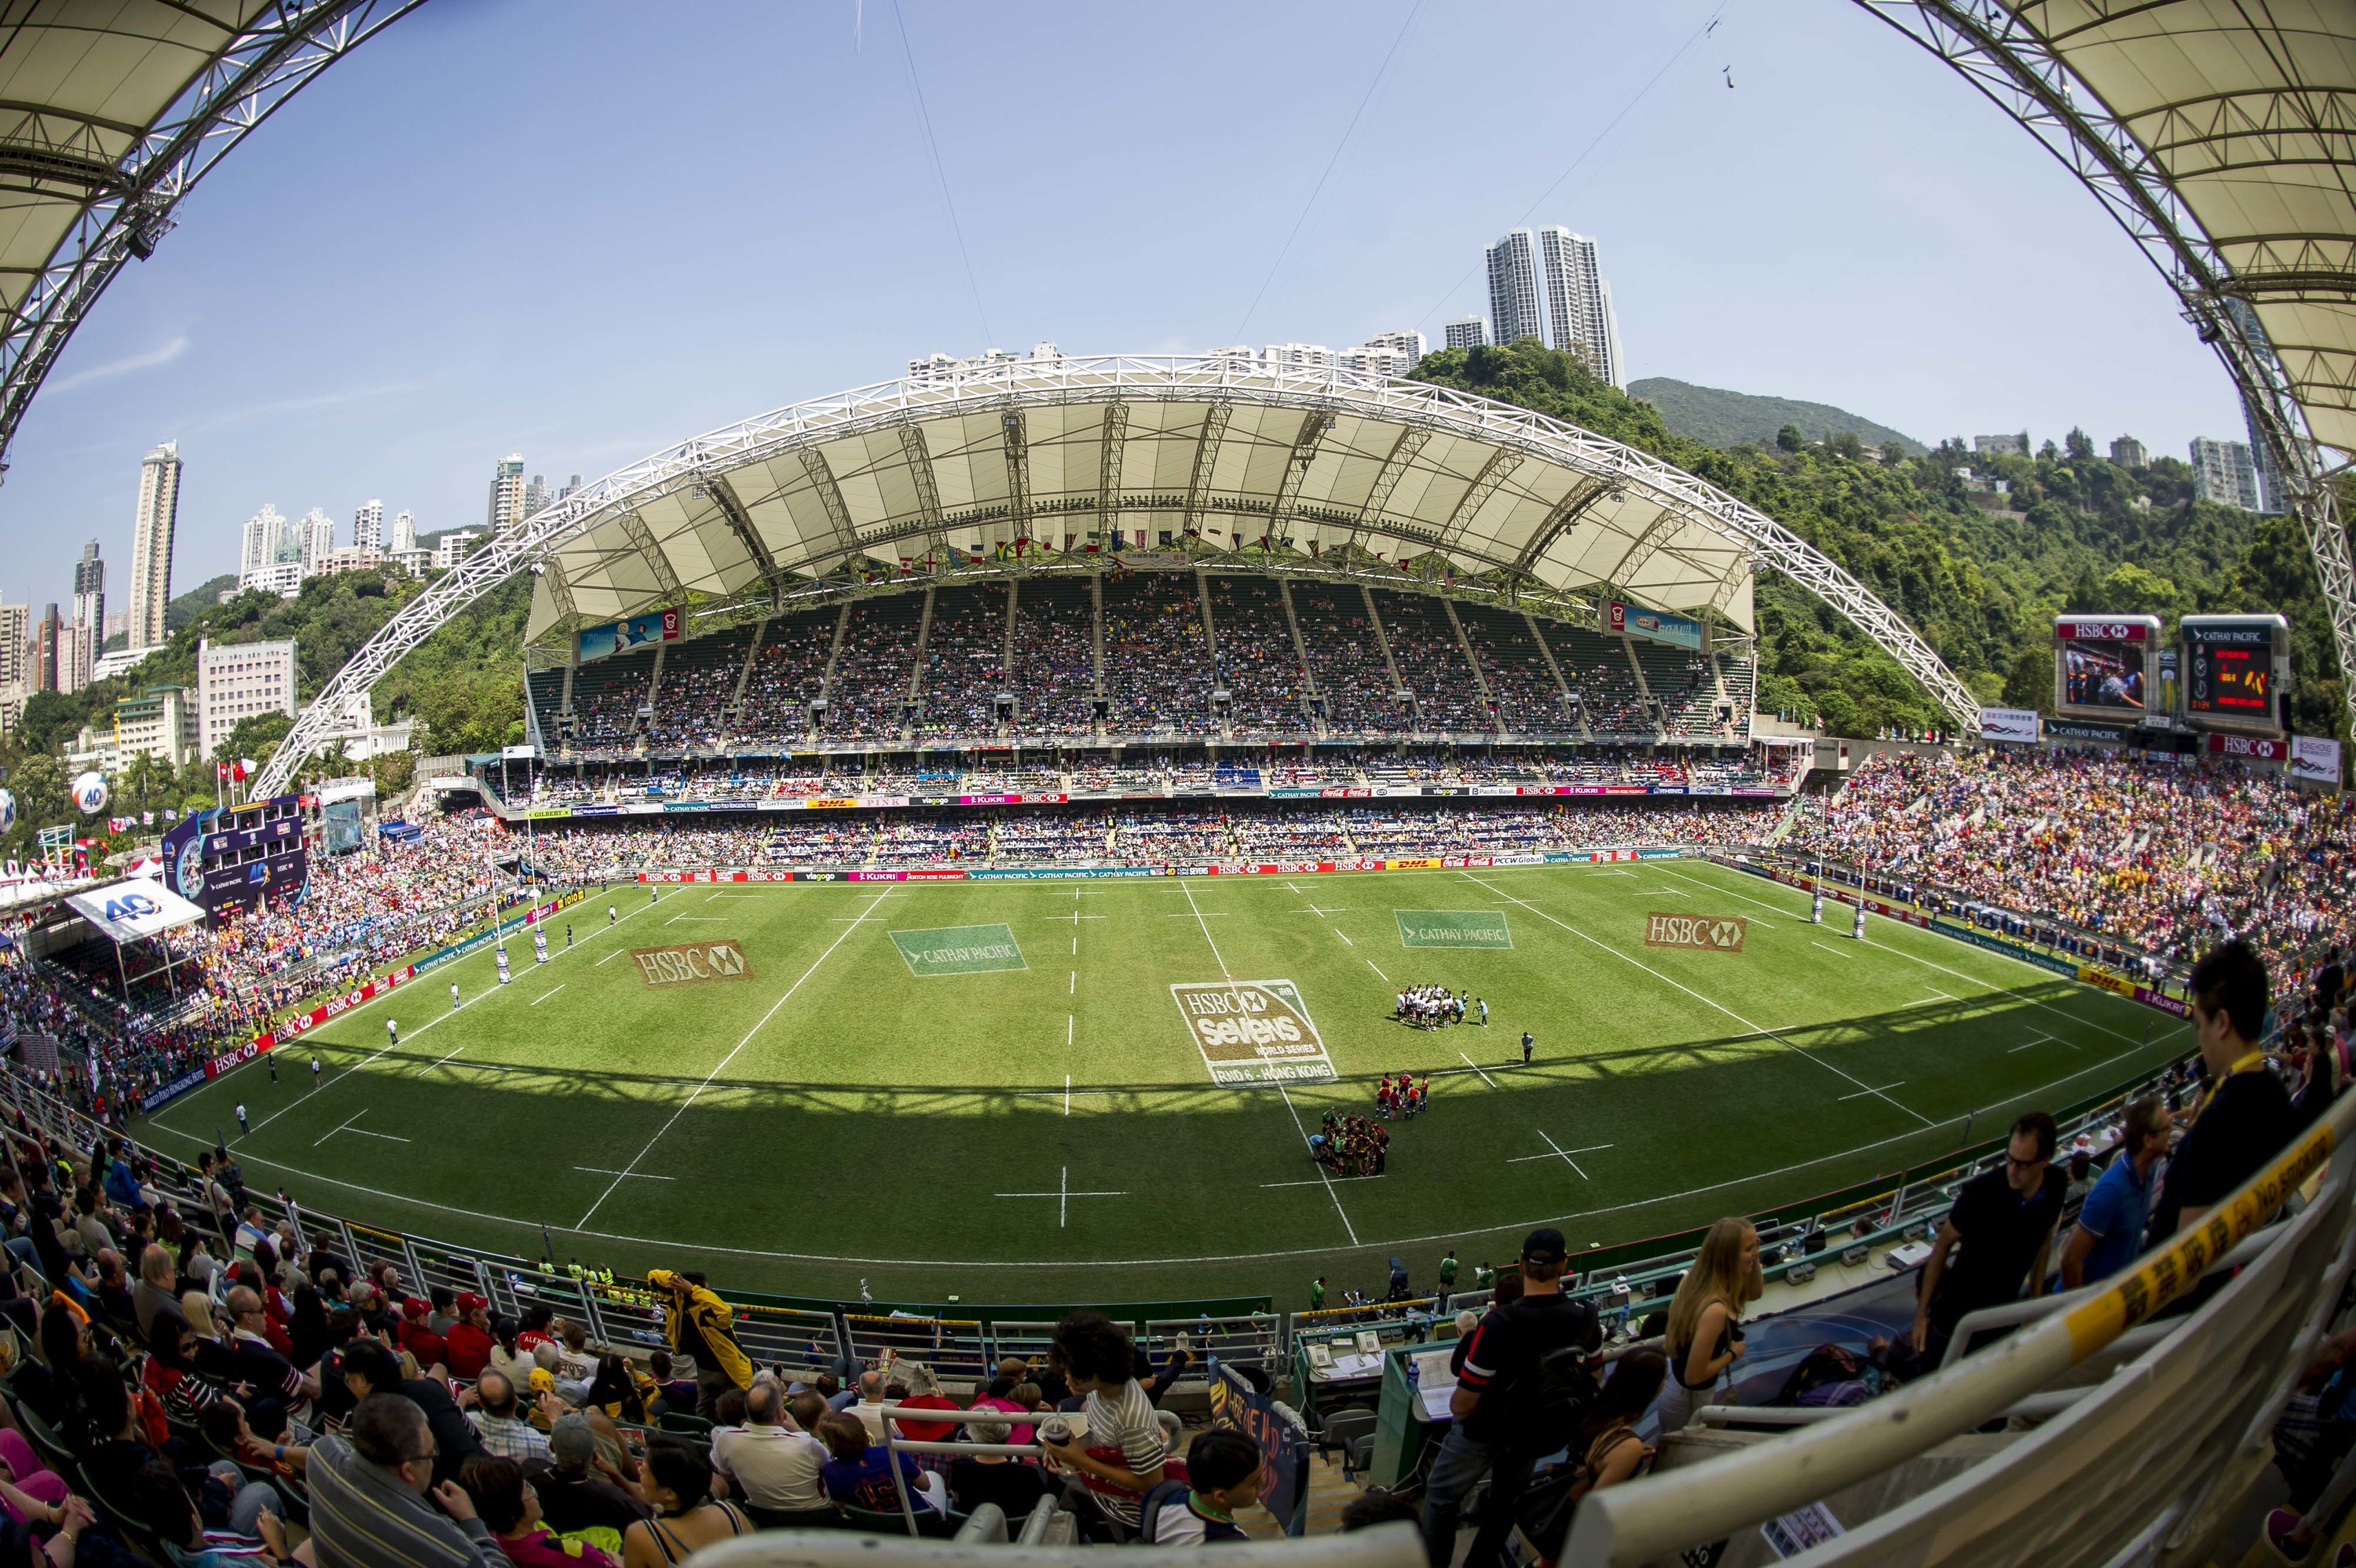 Commercial - HKTB- HK Stadium